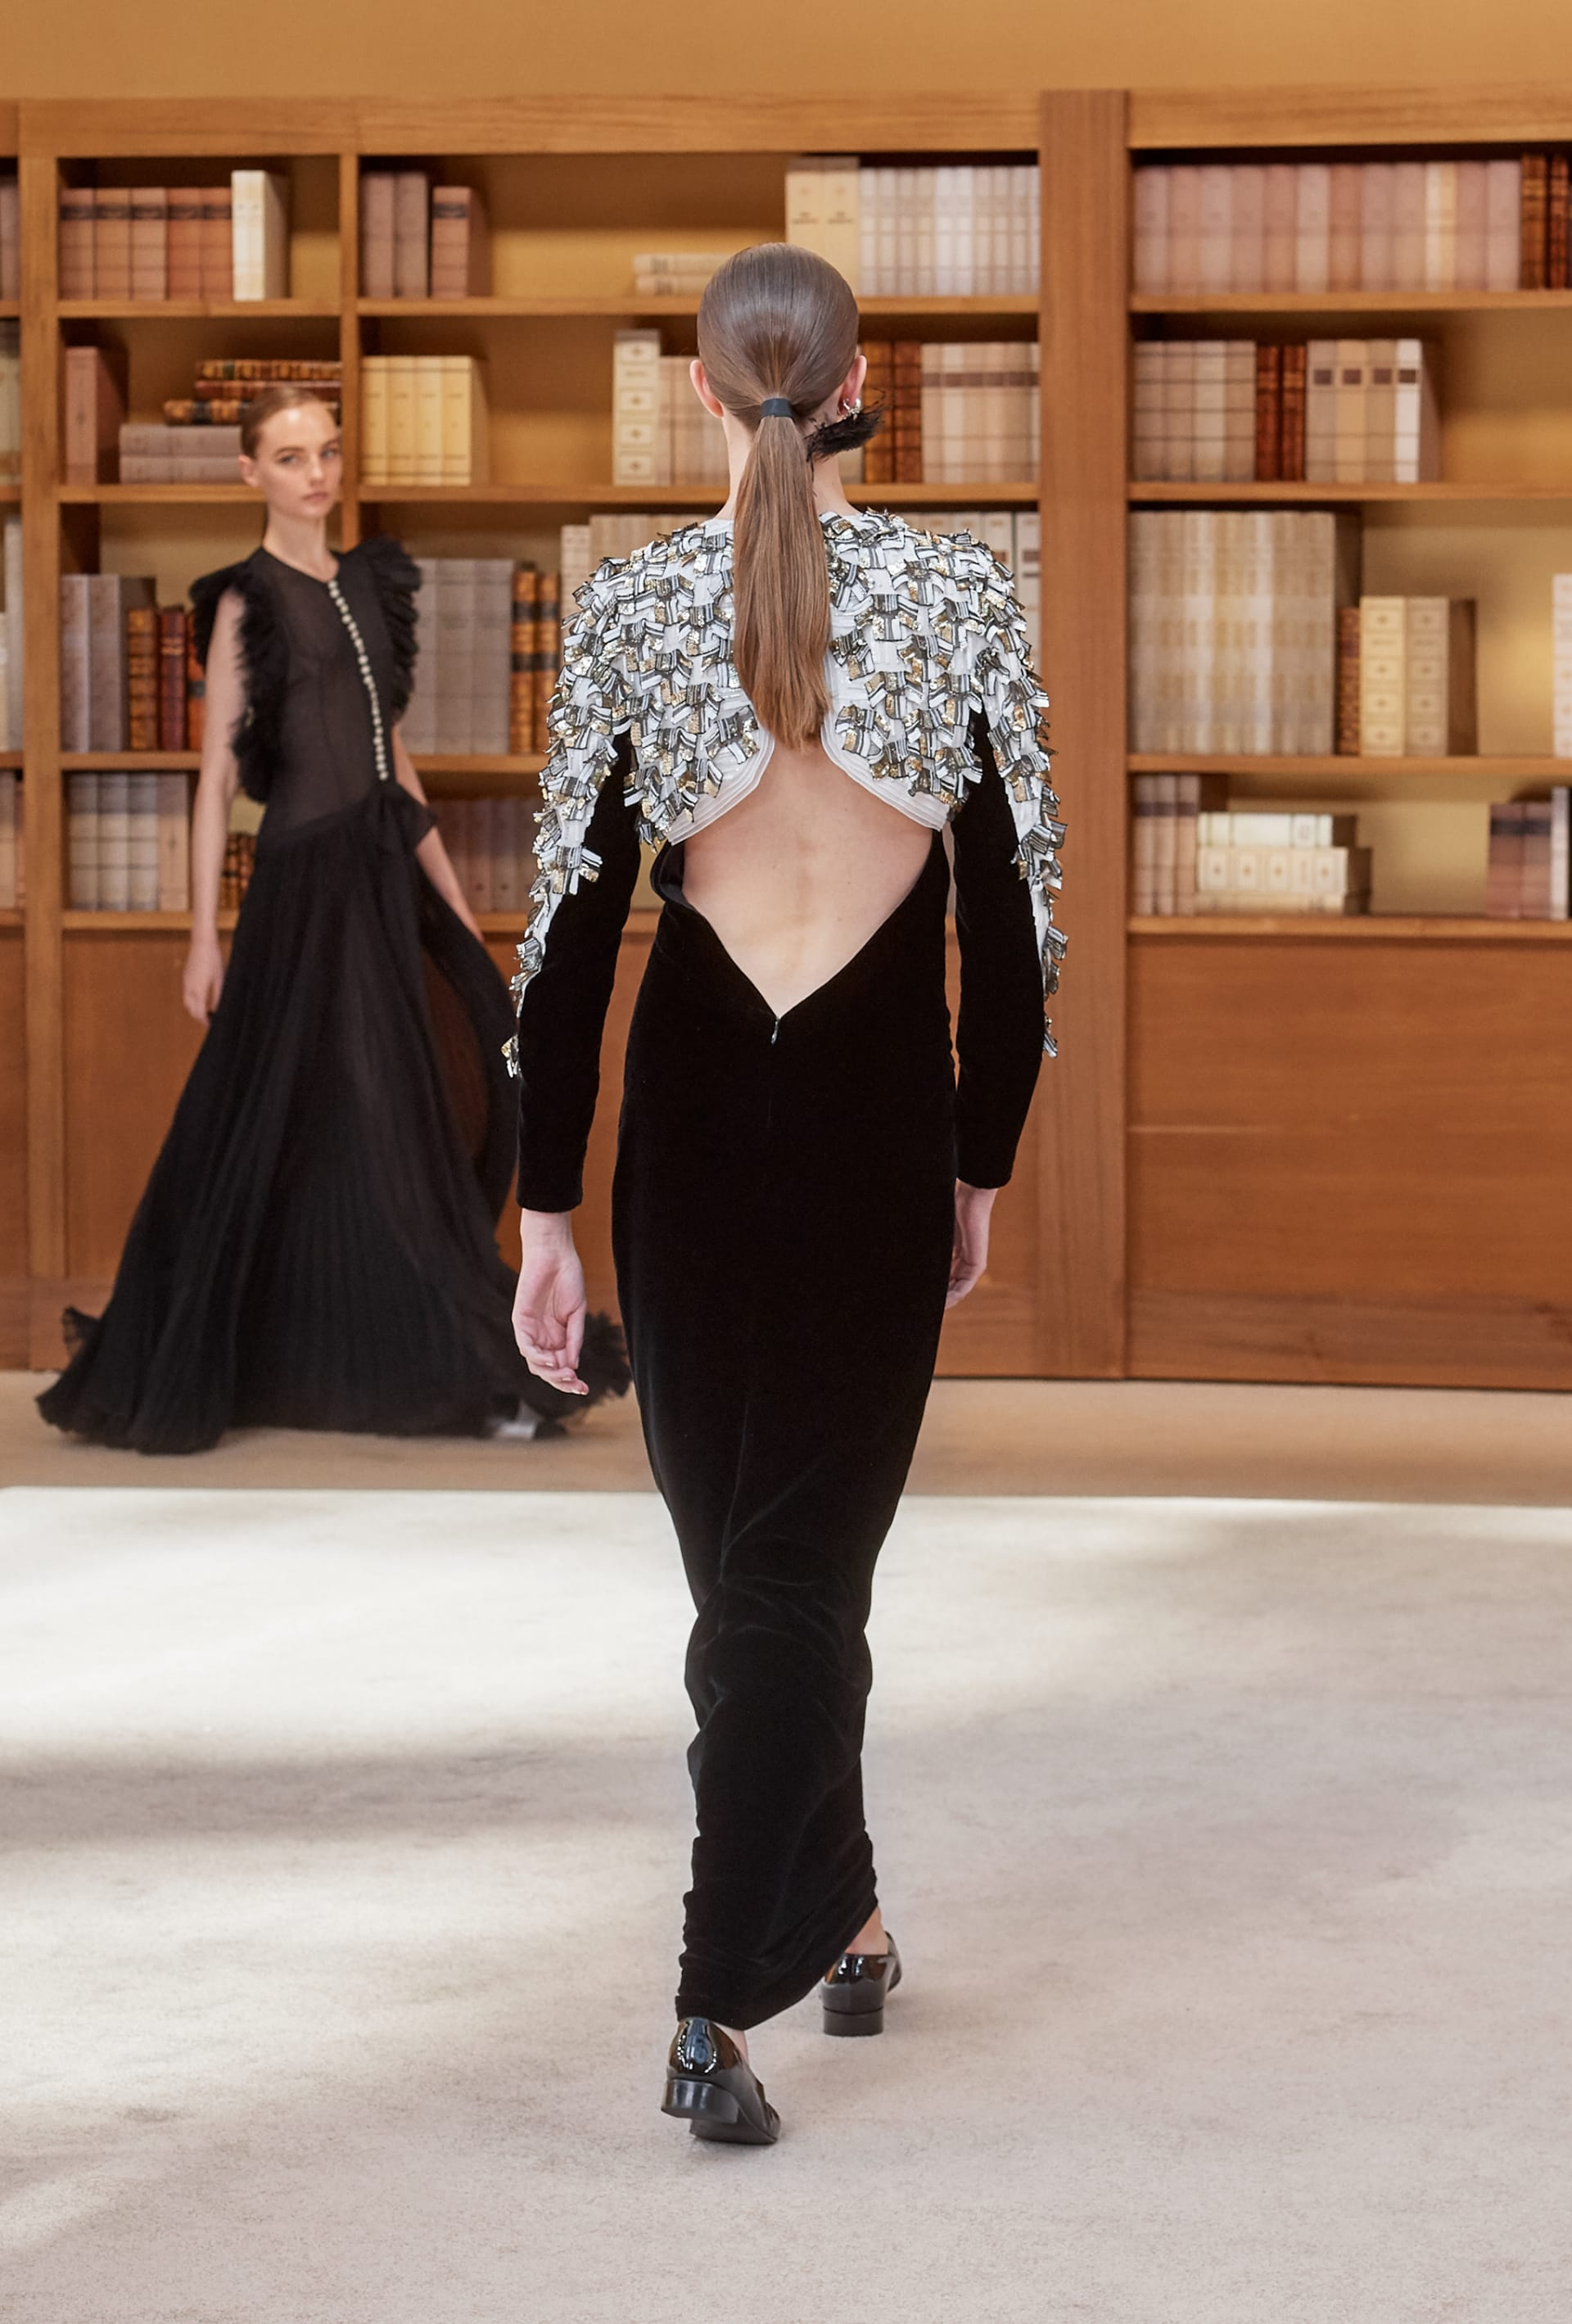 View 7 - Look 58 - Fall-Winter 2019/20 Haute-Couture - see full sized version